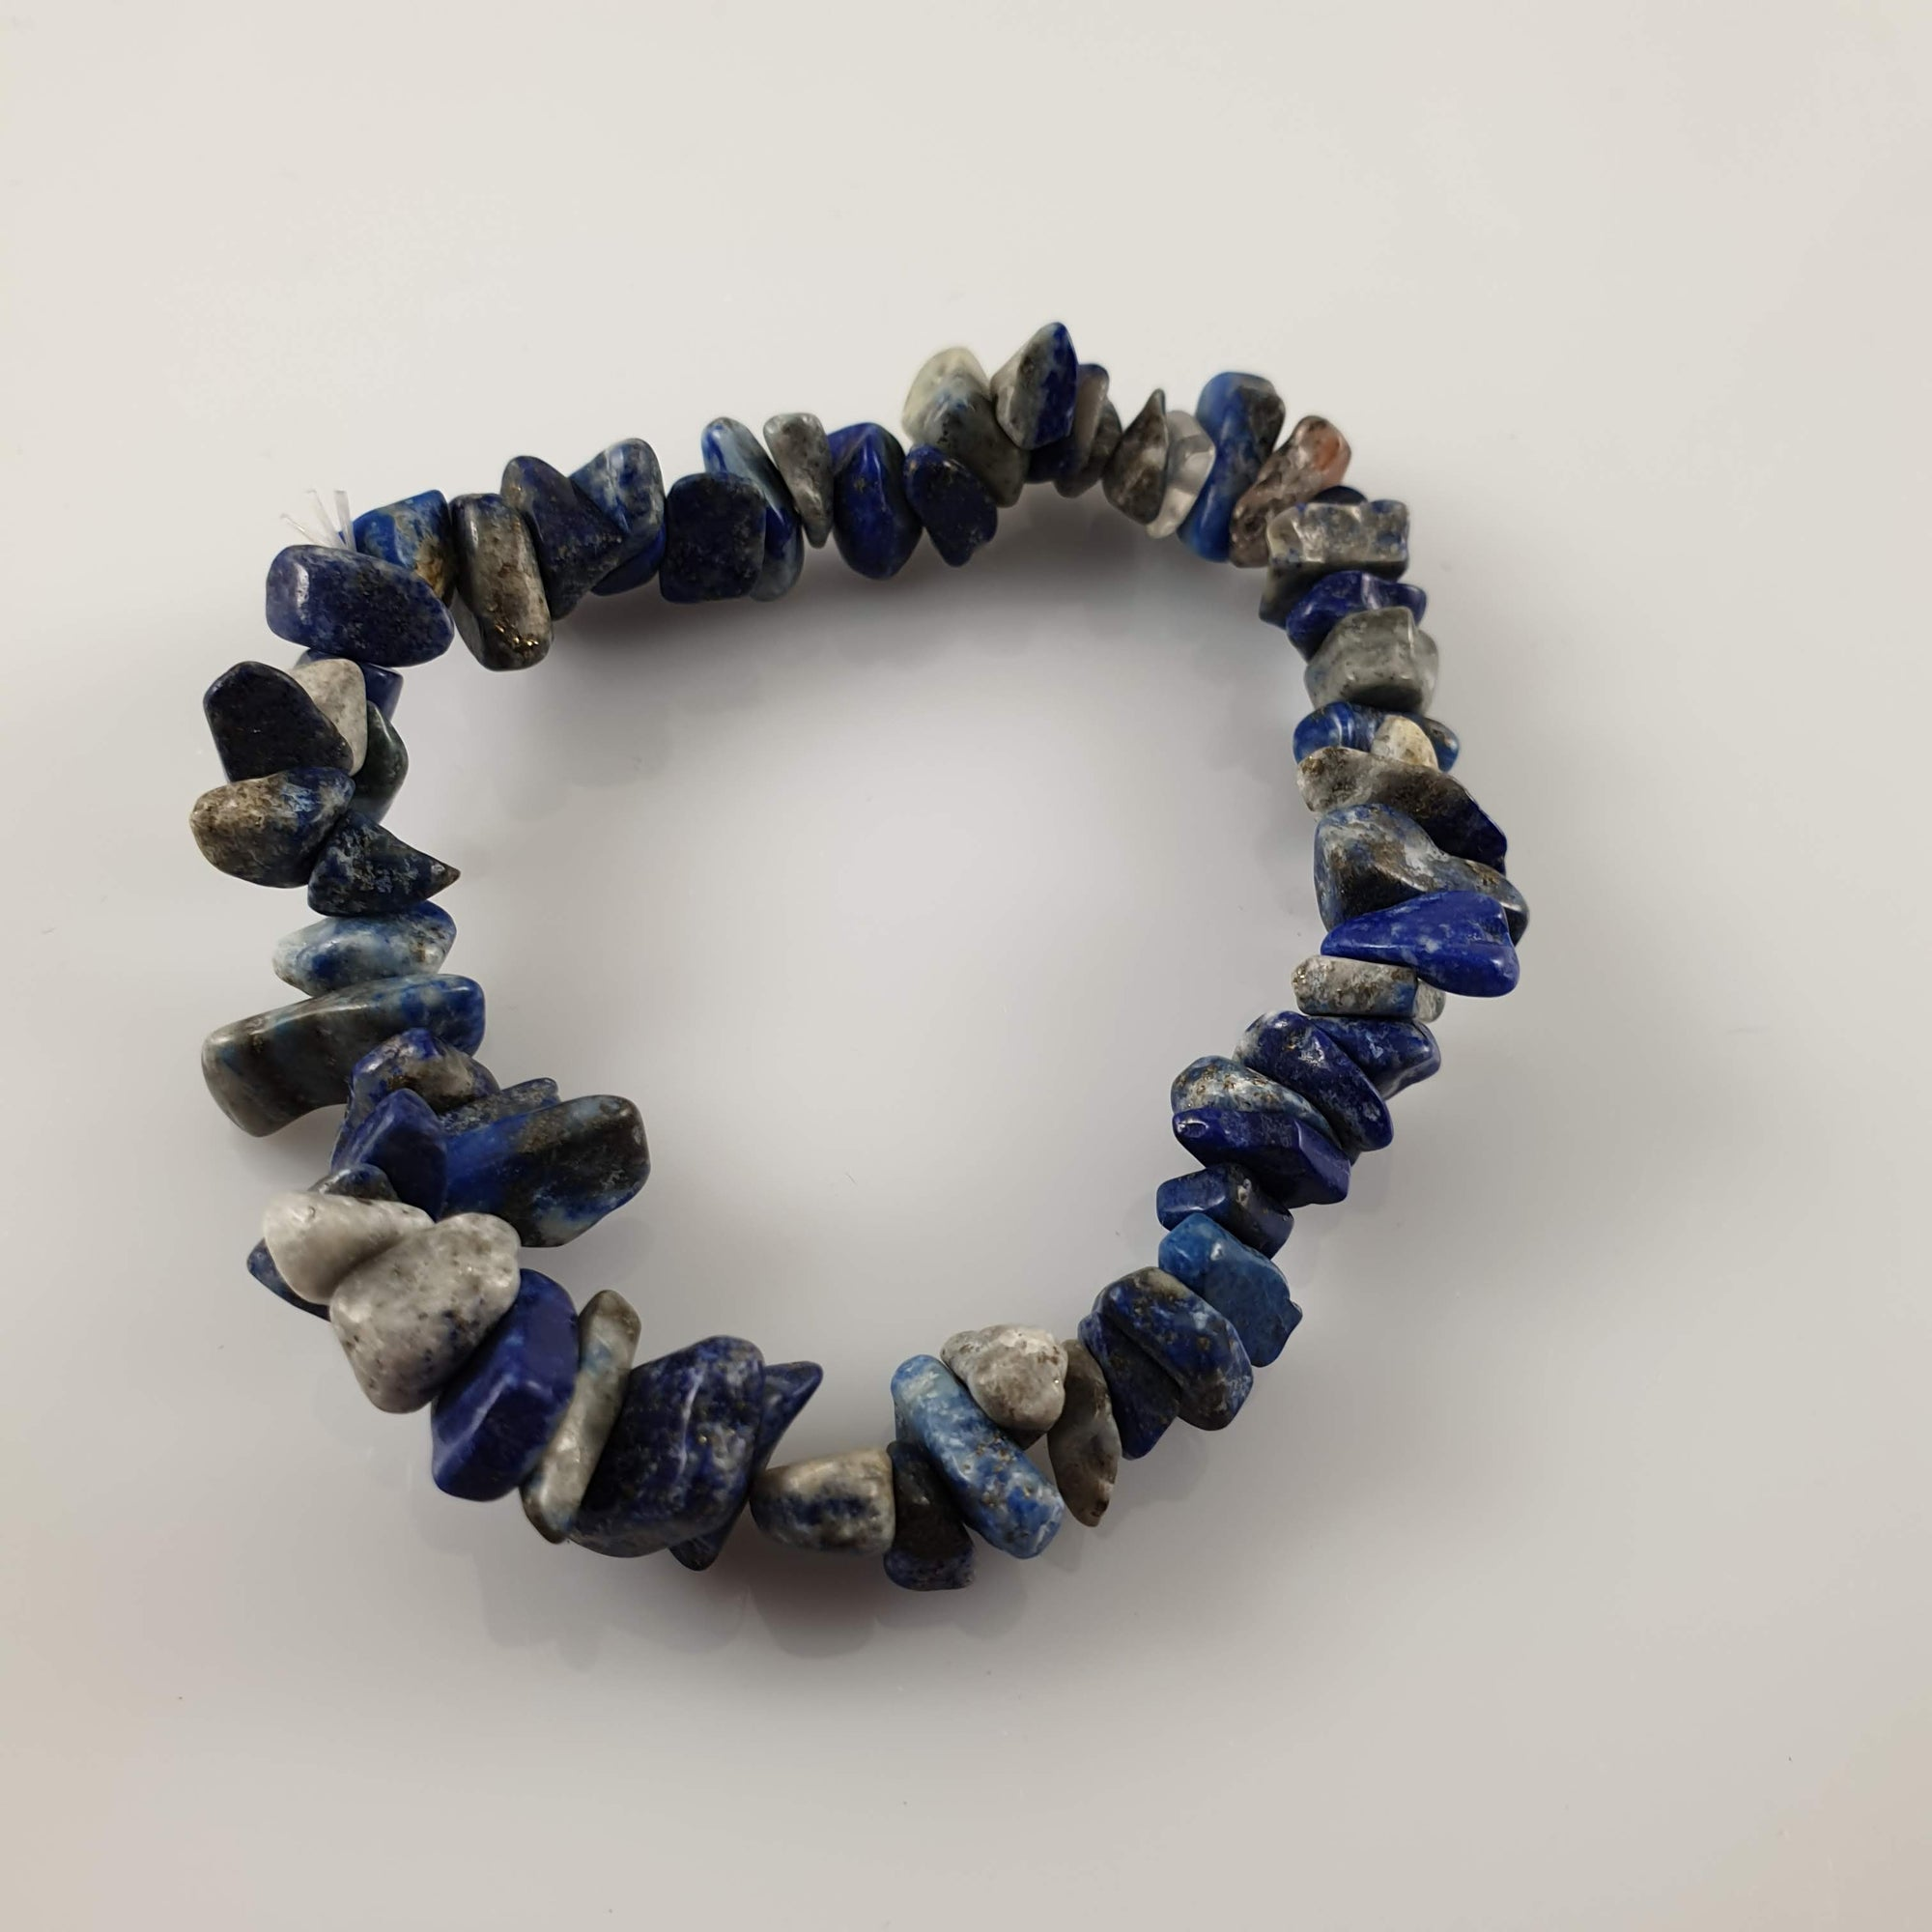 Lapis Lazuli Chip Crystal Bracelet - Rivendell Shop NZ